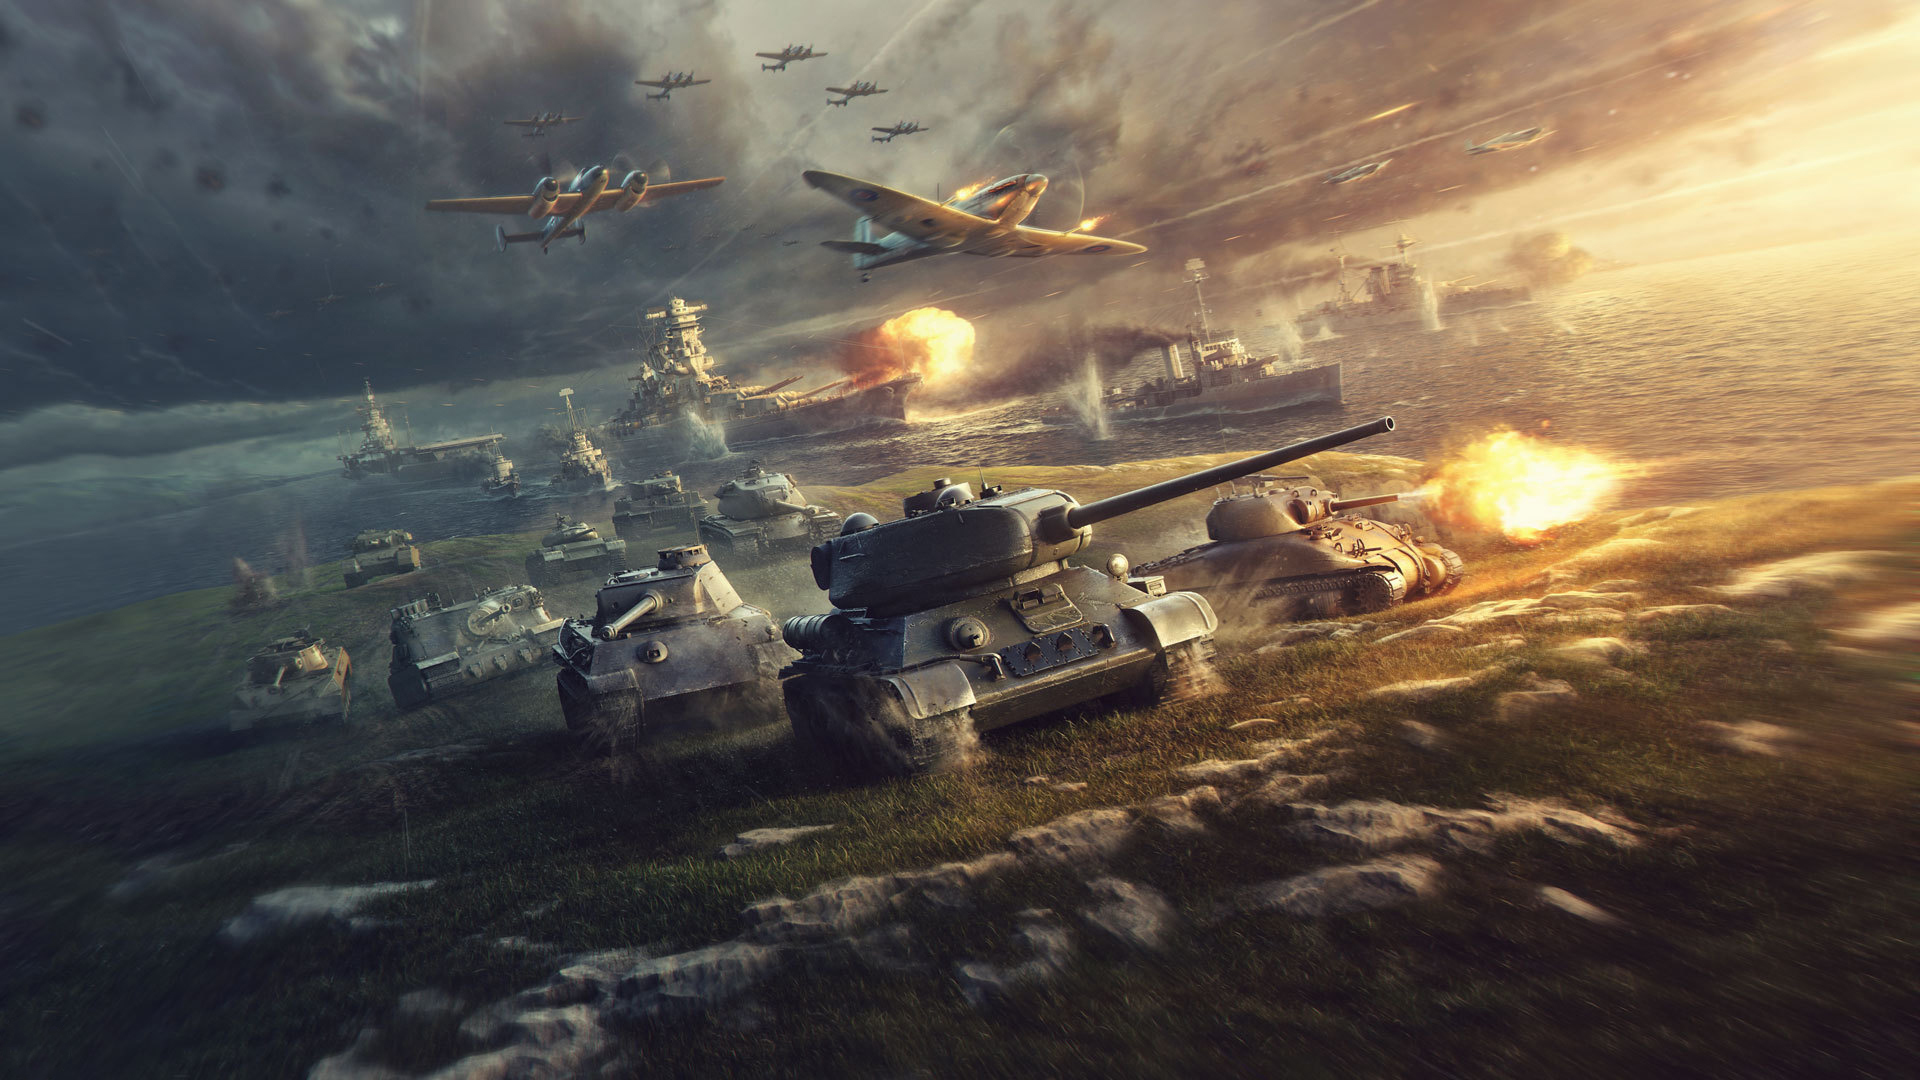 1080p-world-tanks-backgrounds.jpg